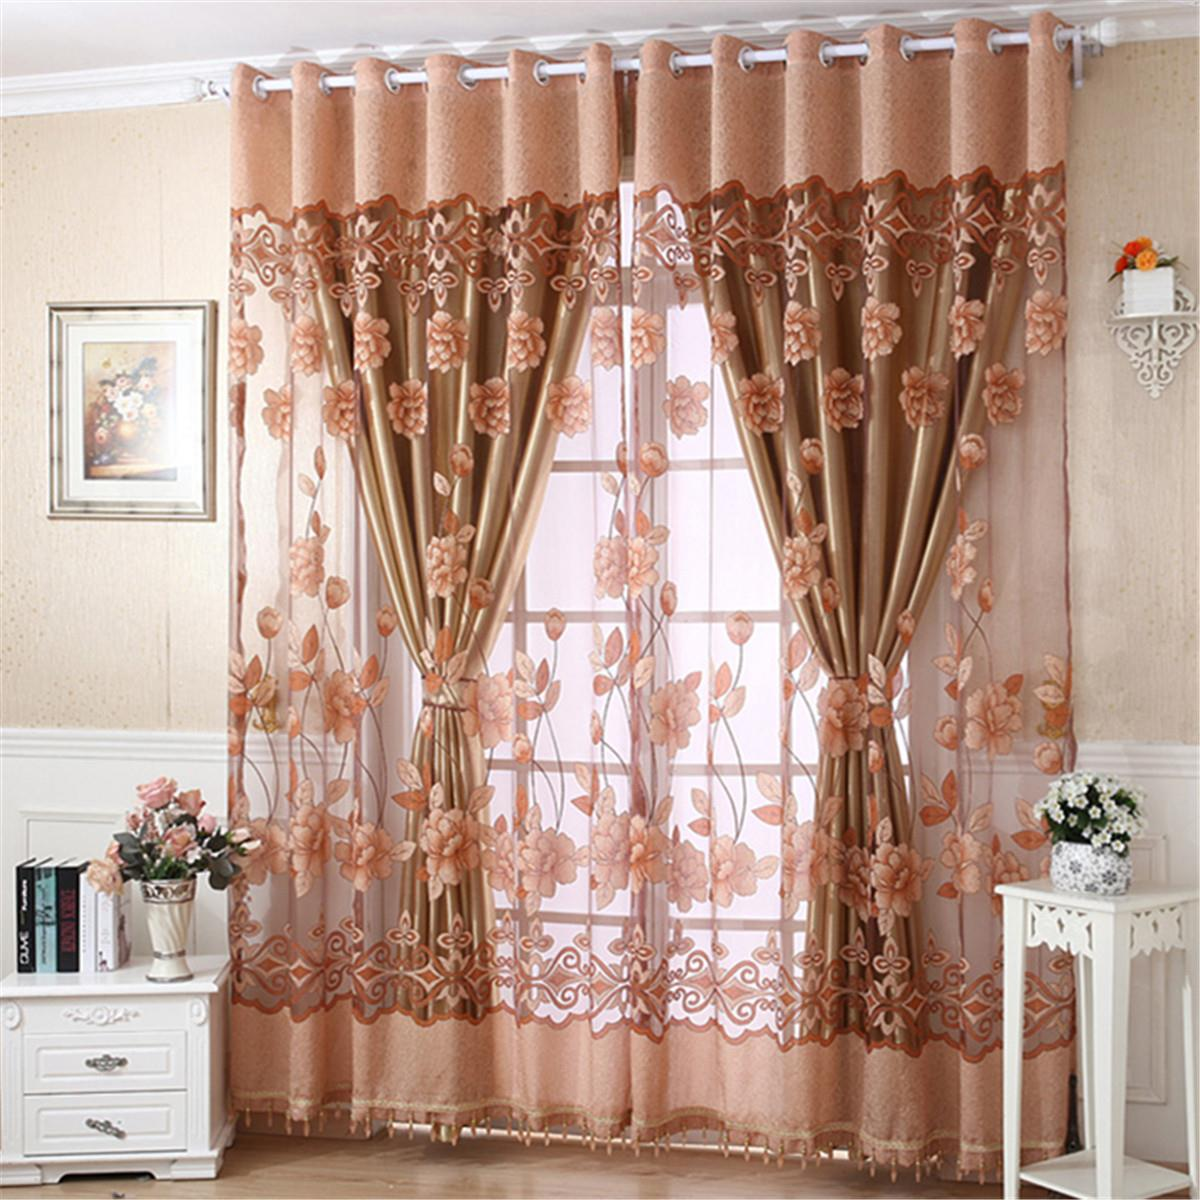 elegant flower print tulle door drape window curtain home panel sheer scarf valances living room bedroom - Valances For Living Room